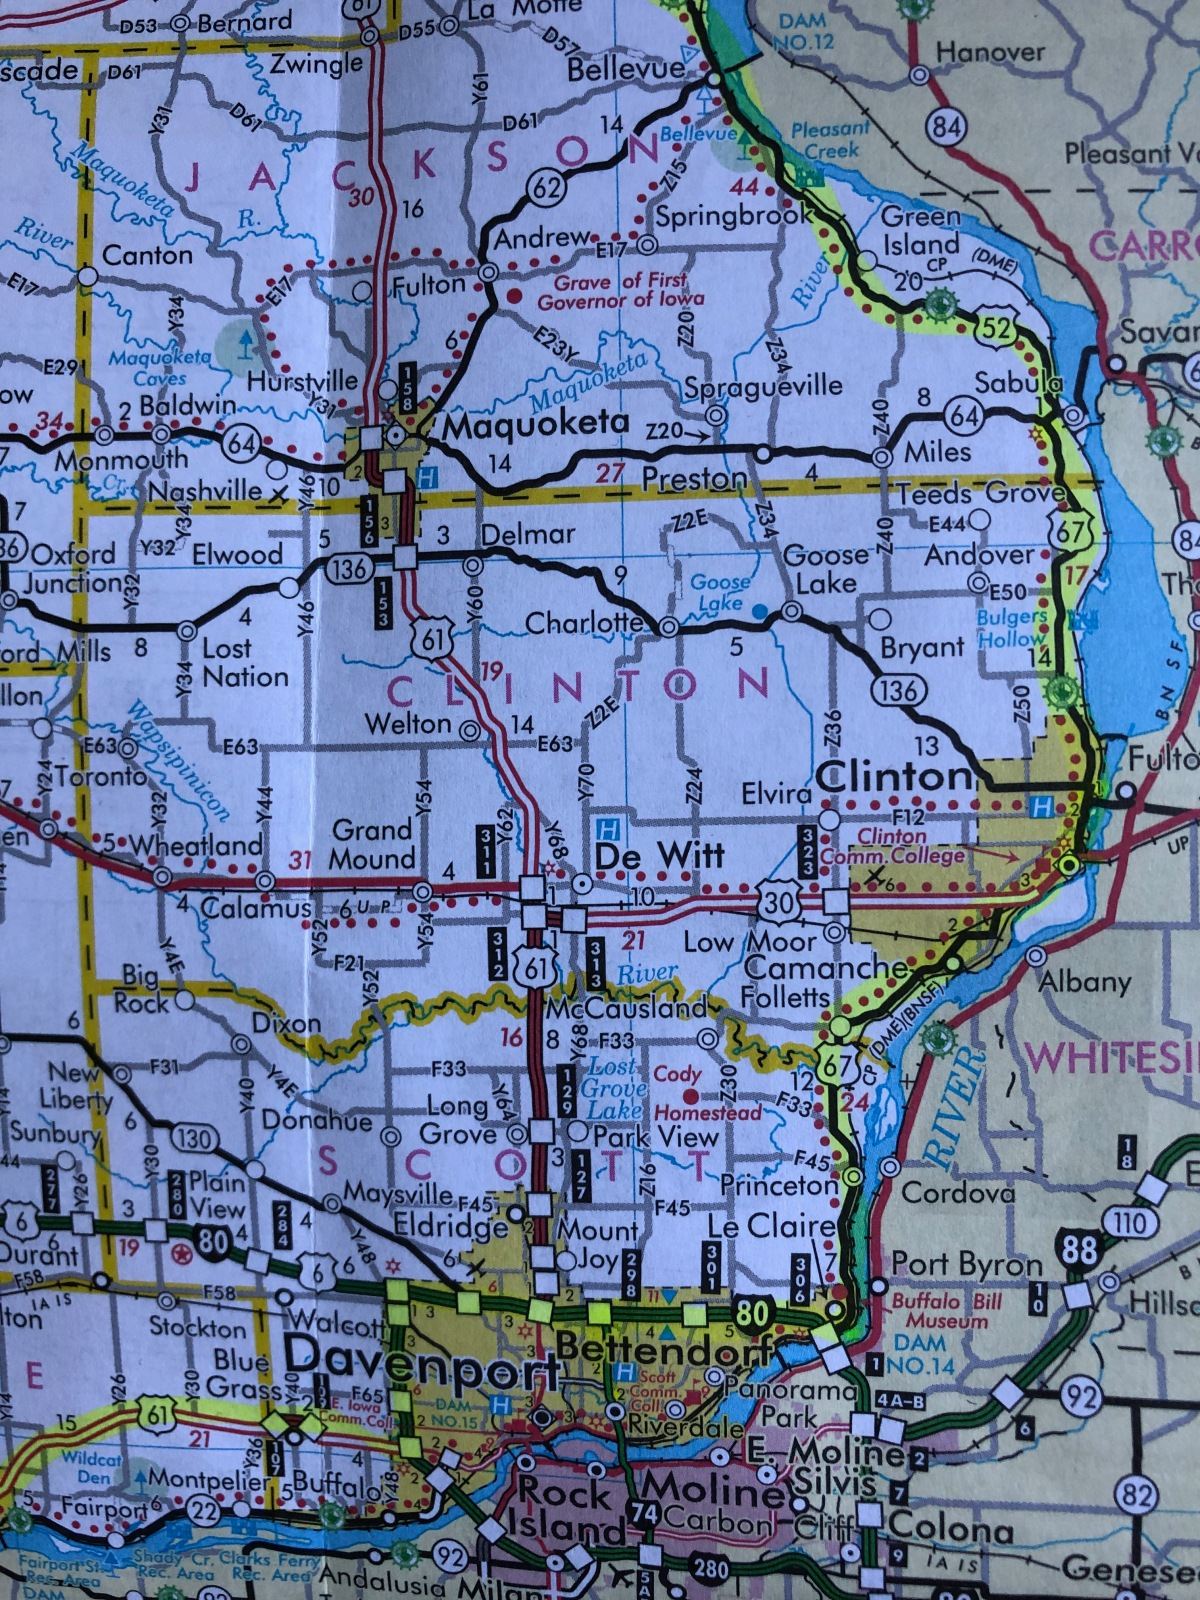 My route map for Day 5 in Iowa highlighted in yellow.